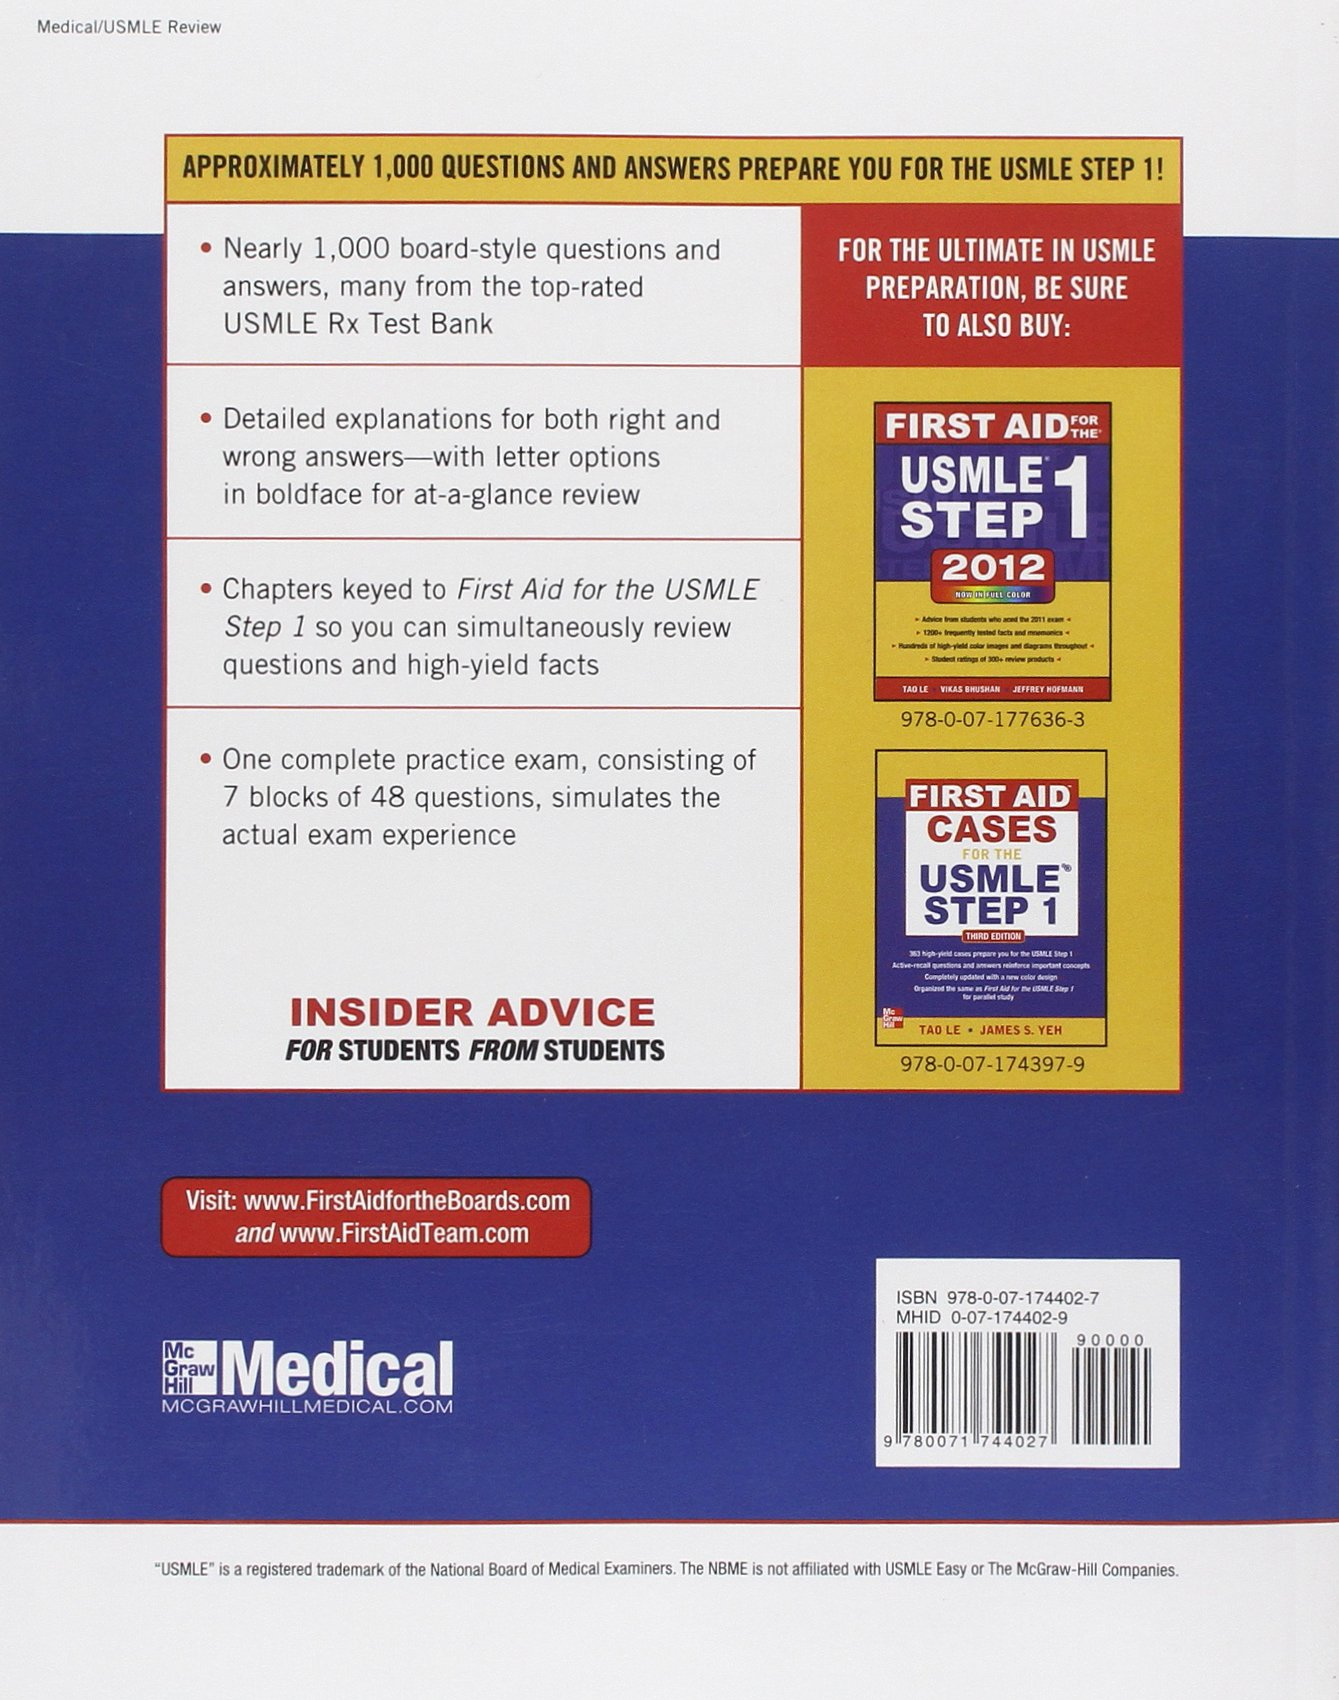 First Aid Q&A for the USMLE Step 1, Third Edition: Amazon co